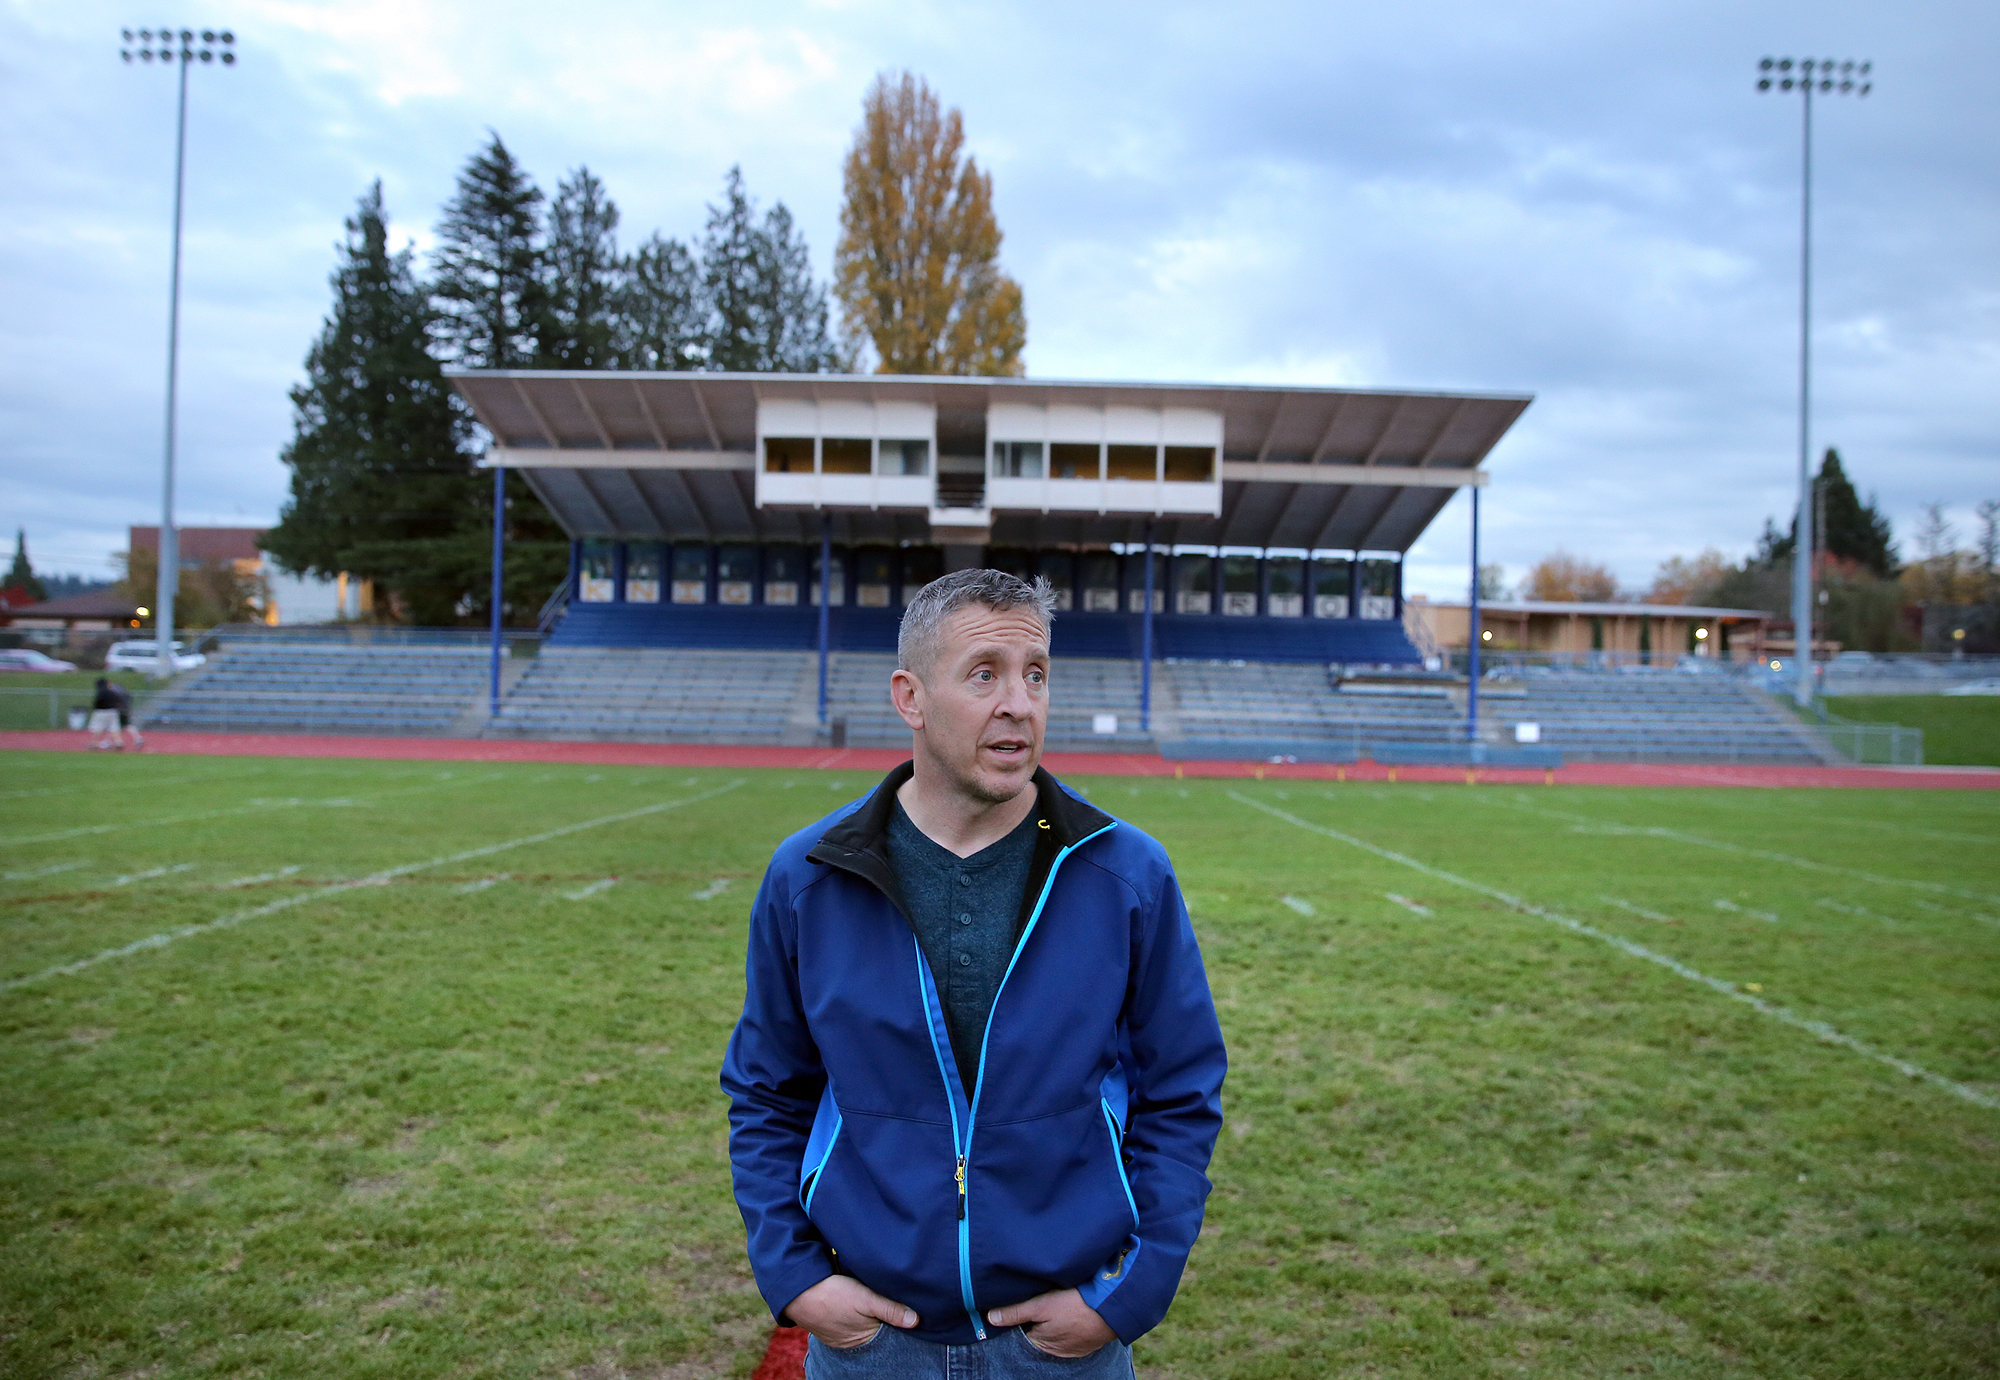 Appeals Court Rejects Former Bremerton Coach Joe Kennedy's Lawsuit Over Prayer at Football Games